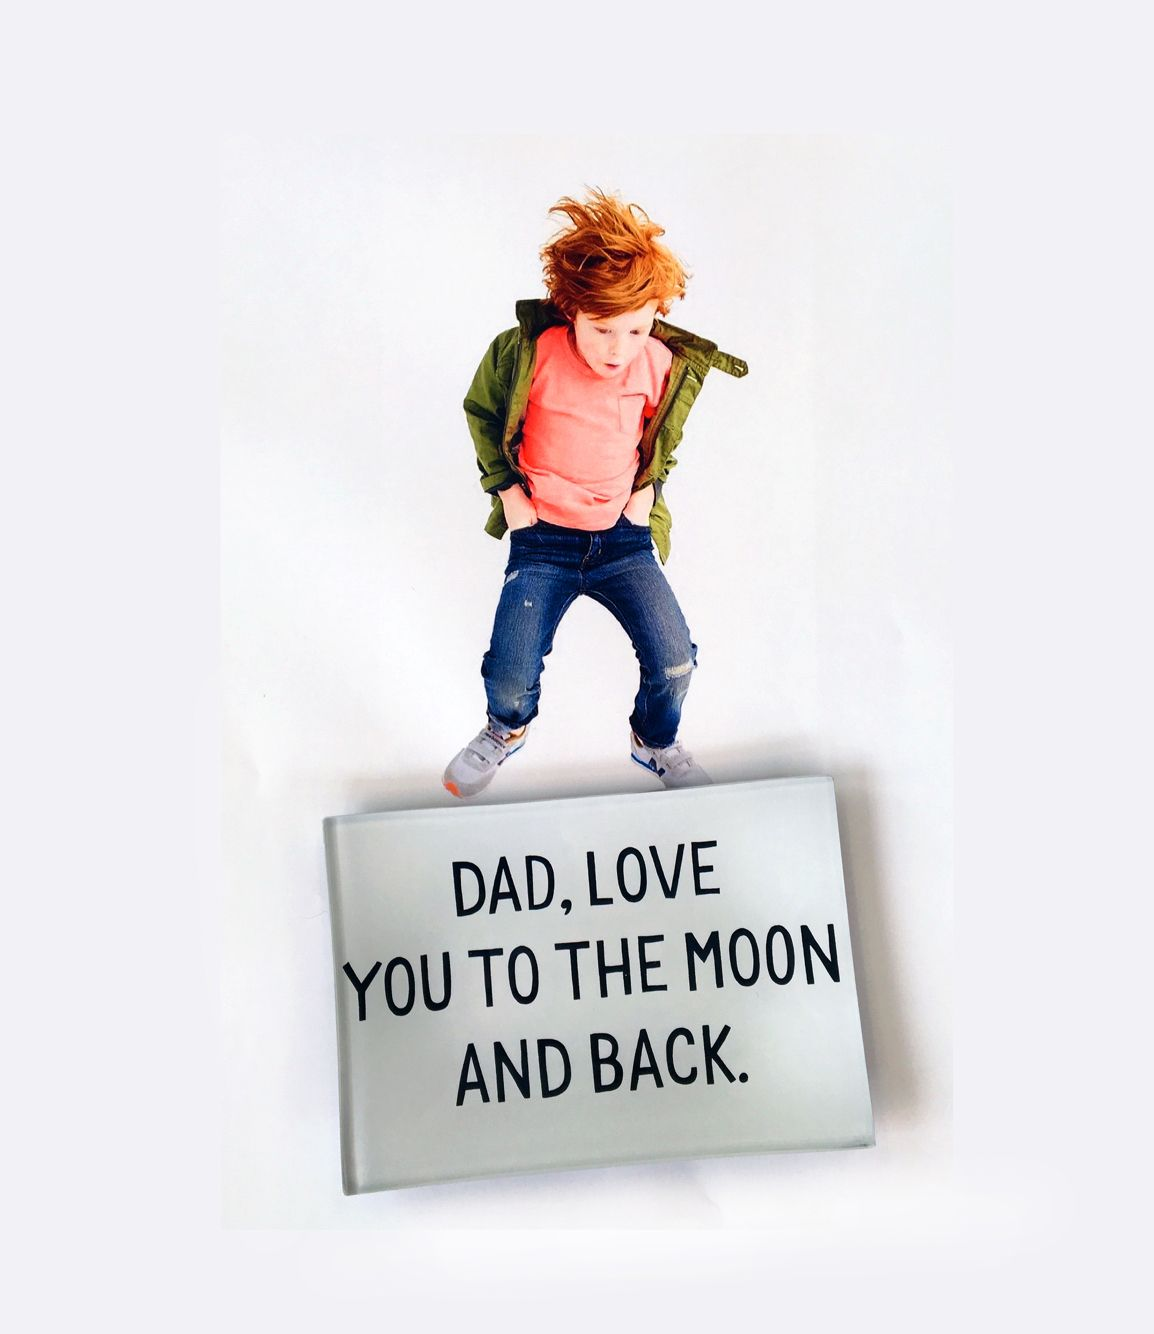 """Dad, love you to the moon and back,""❤️ Ben's Garden glass decoupage desk valet tray... The quote of the day for Monday as ⭐️ a great gift idea for dad and Father's Day! Visit Bensgarden.com to find more fun quotes and gifts for dad's desk at home or work- with free shipping on every order!"